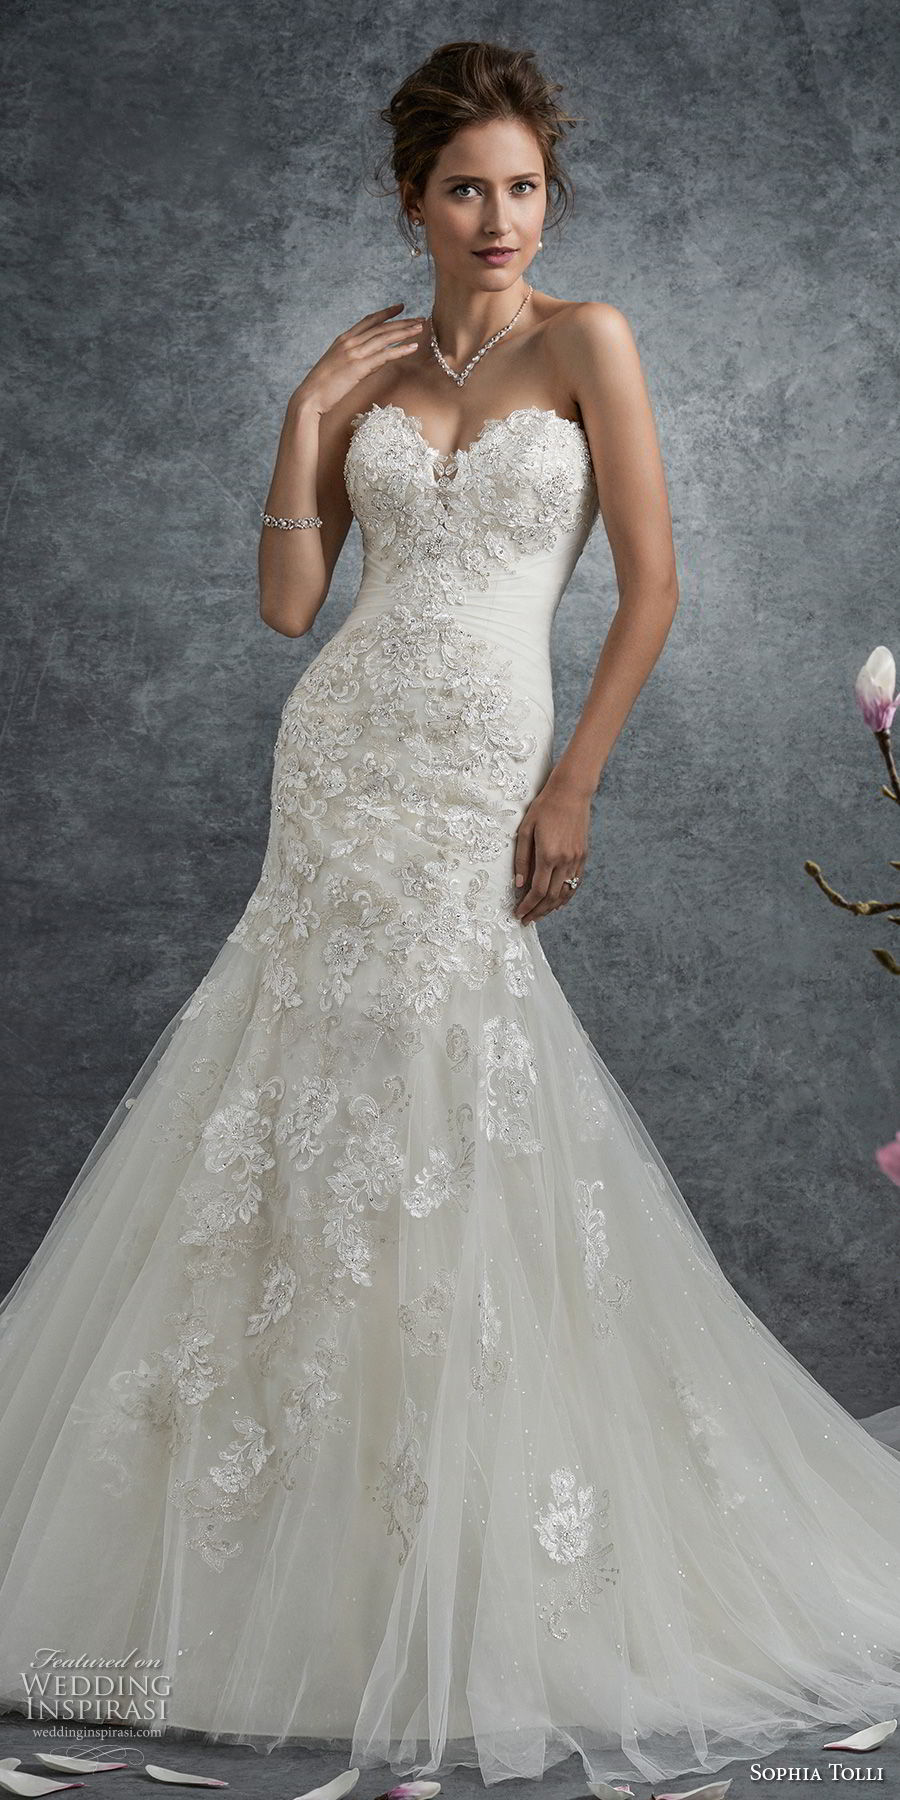 Wedding Dress Embellished And Line Neckline Lace Tulle Soft Fit Sweetheart And Flare